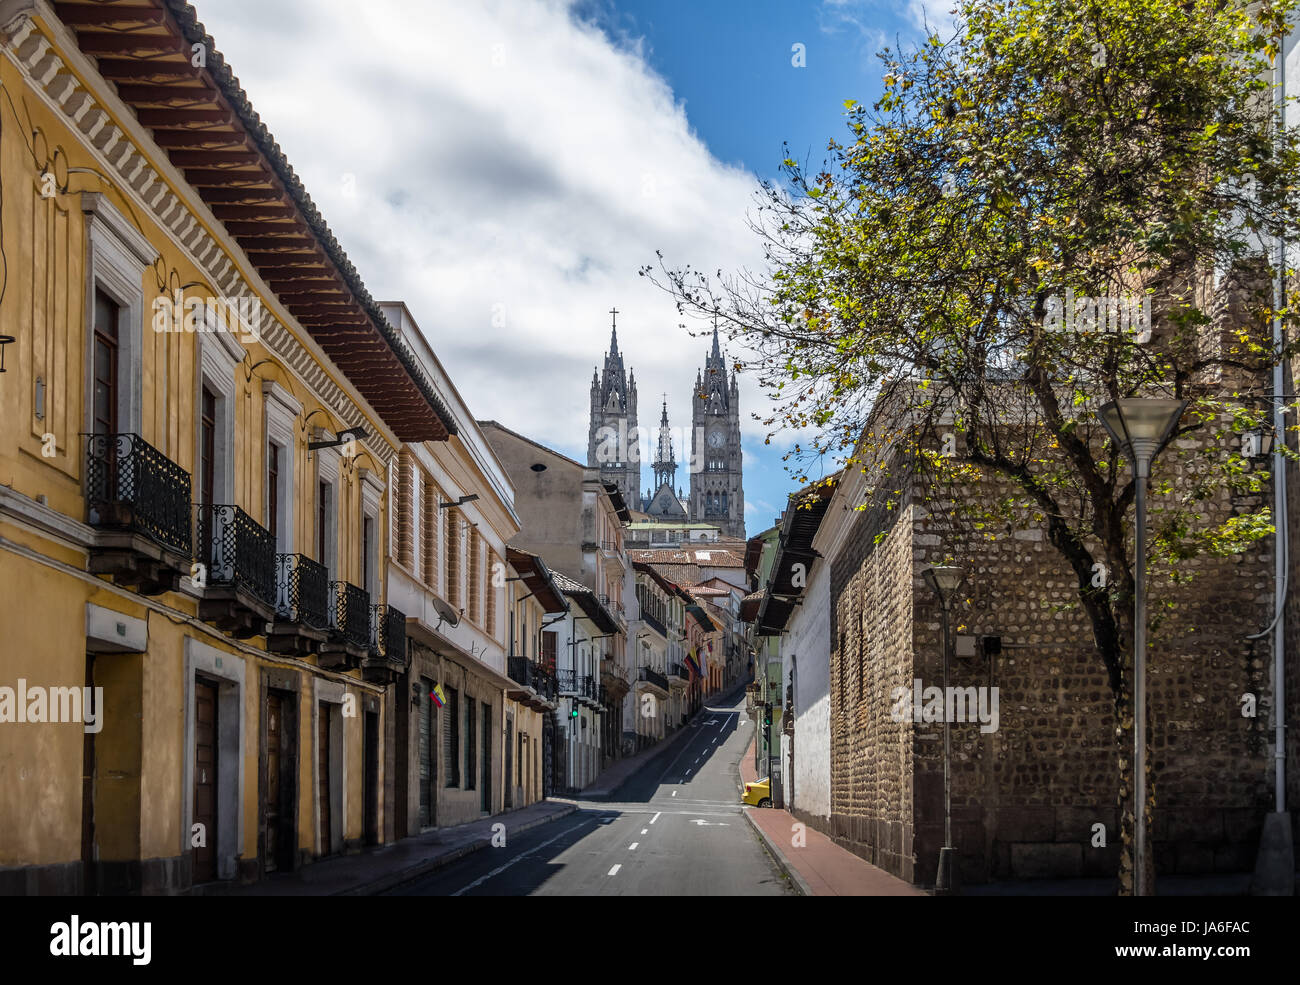 Street of Quito and Basilica del Voto Nacional - Quito, Ecuador - Stock Image